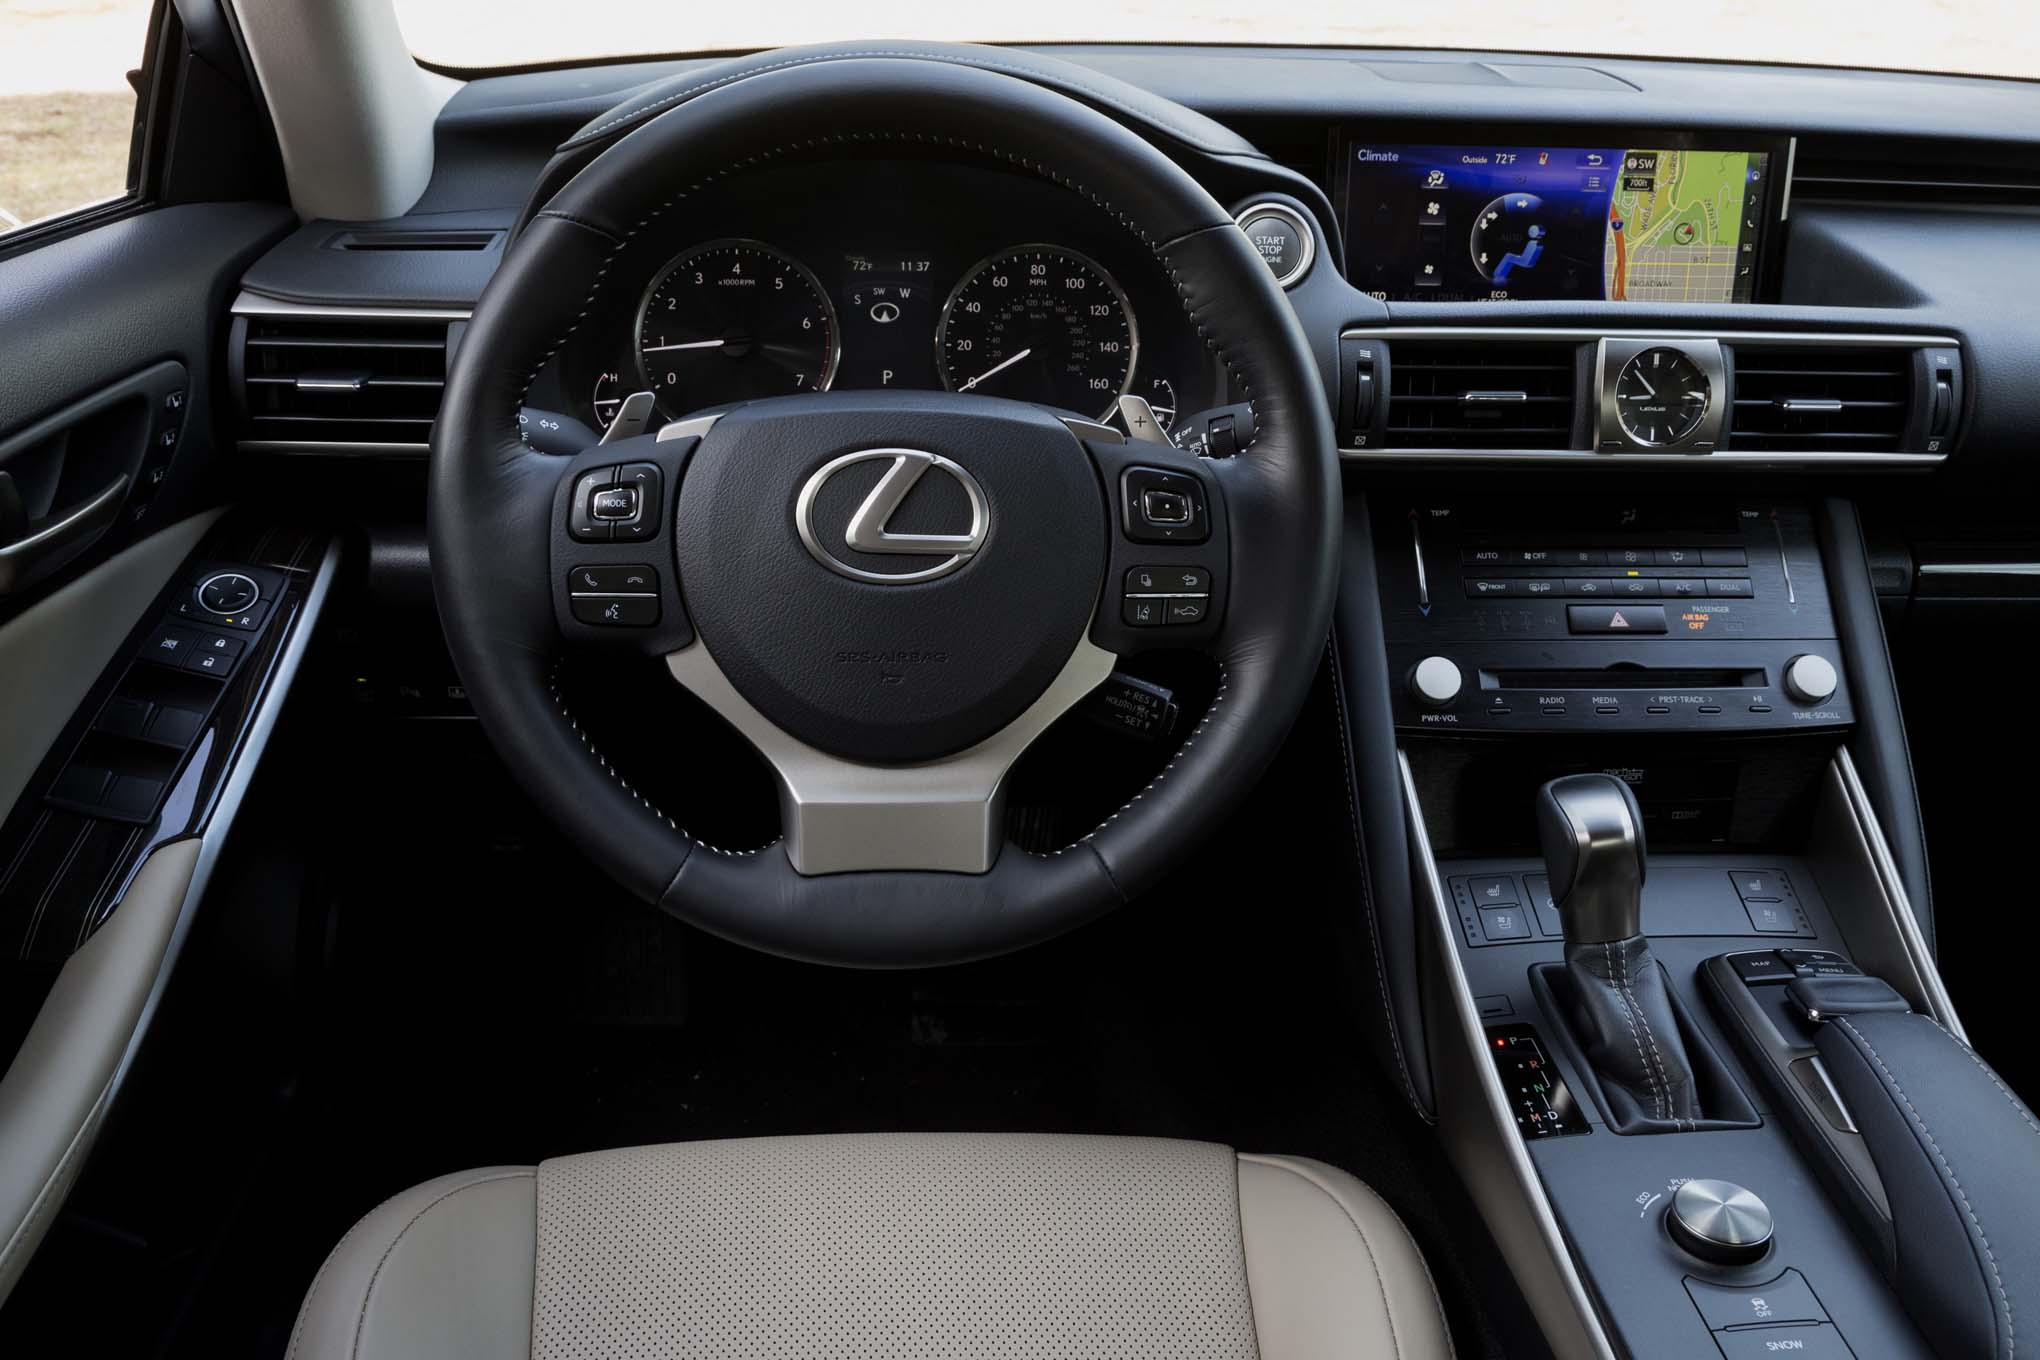 2017 Lexus IS Cockpit View